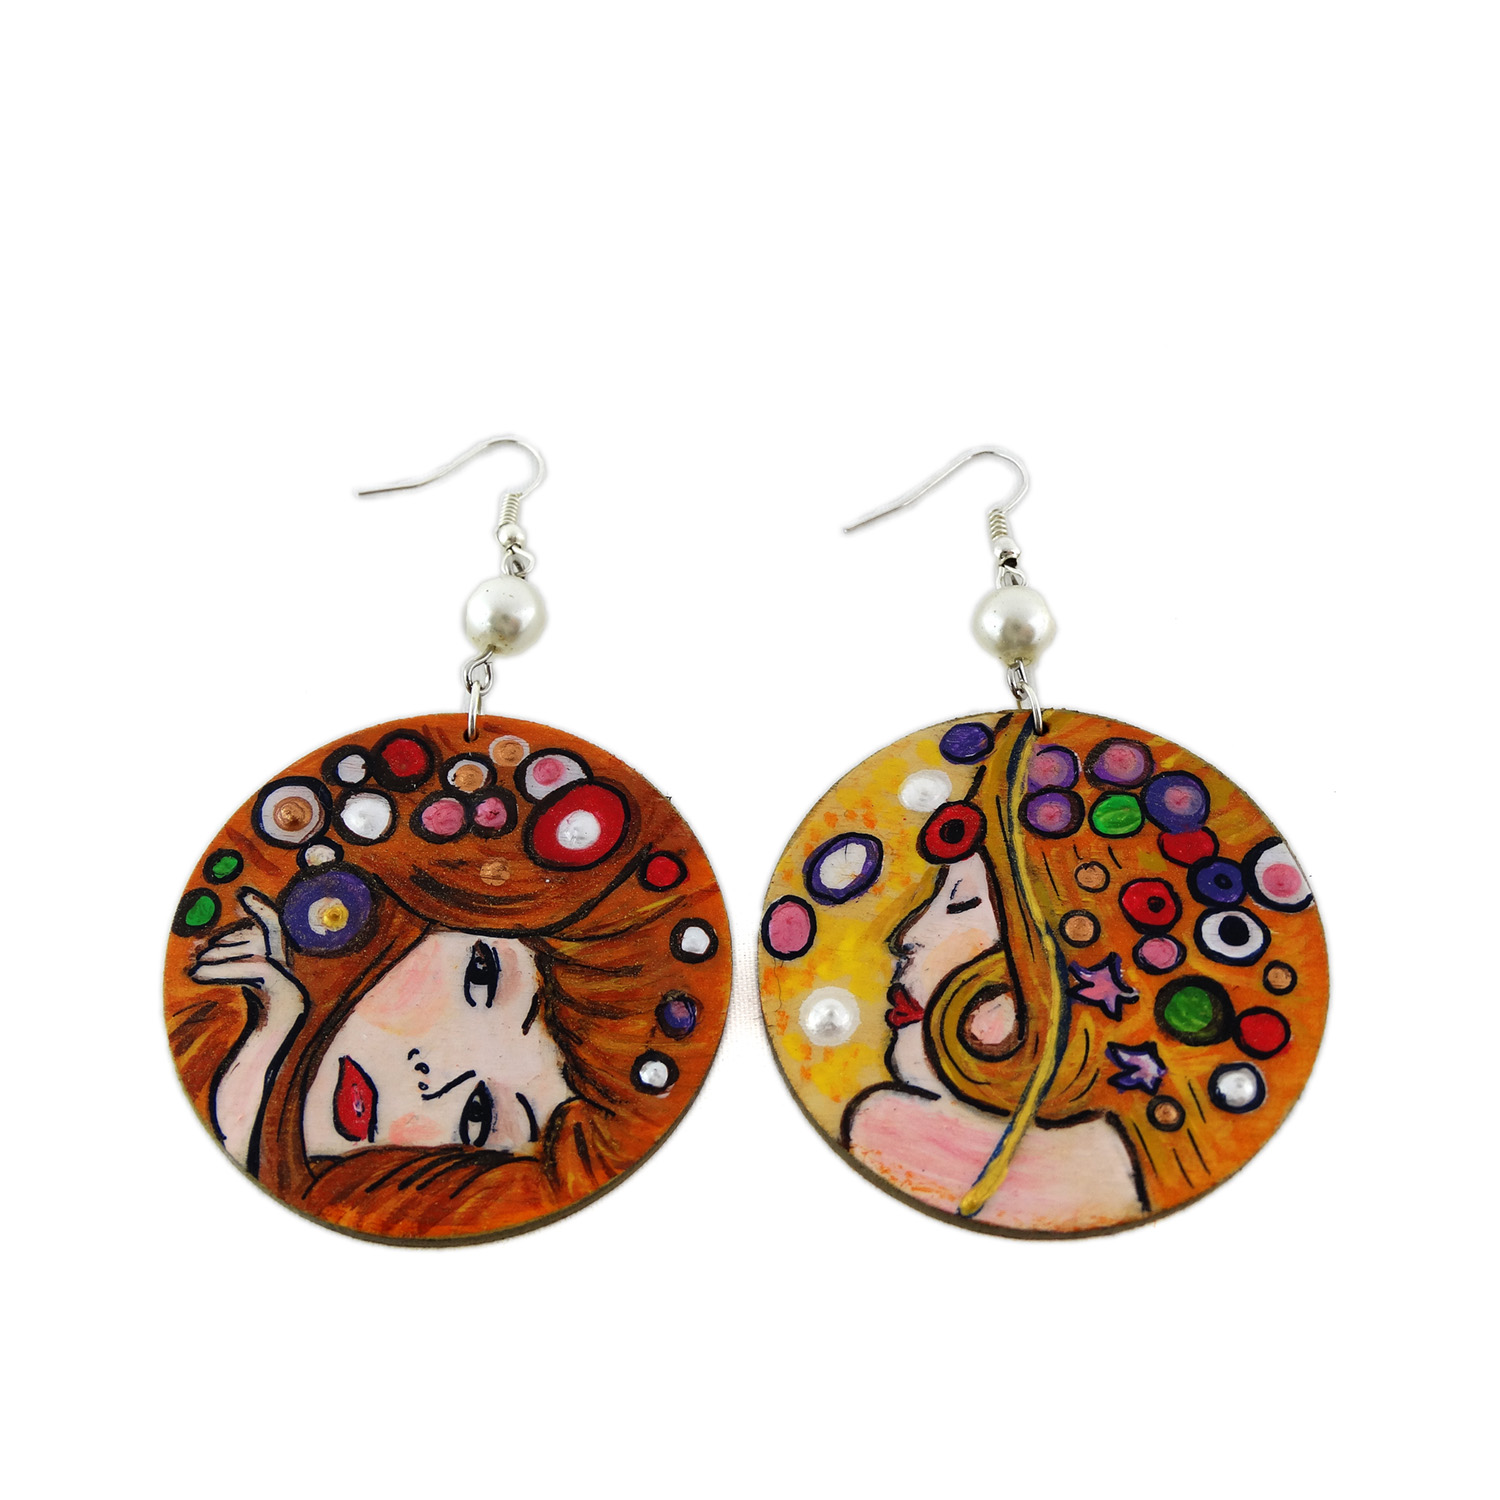 Hand-painted earrings - Water serpents by Klimt